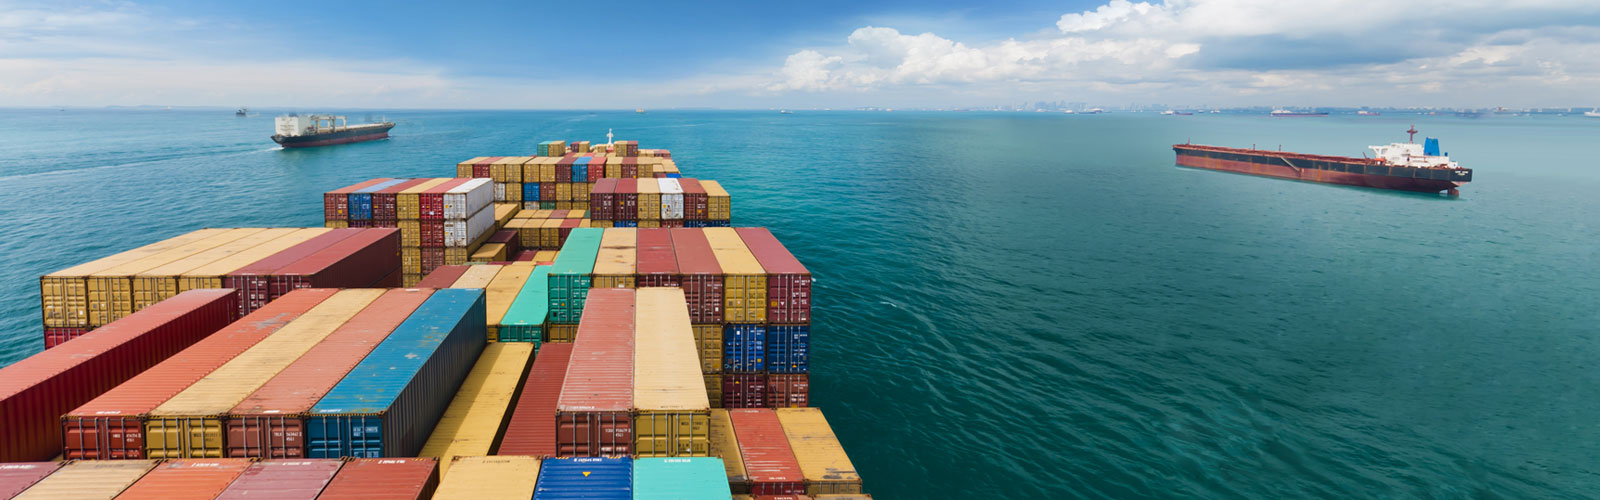 Multicolor containers, ships and ocean